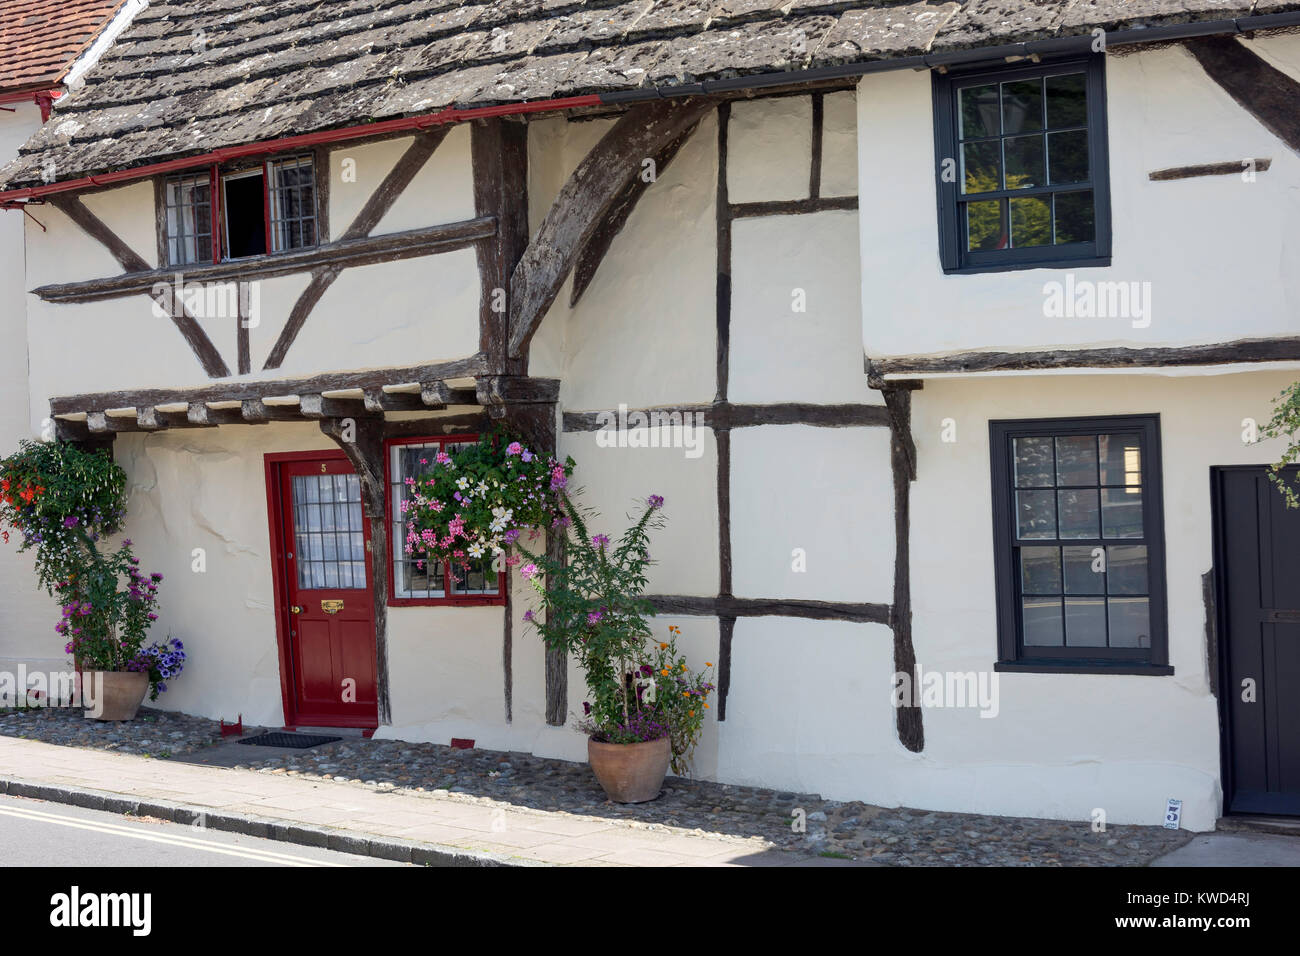 Timbered cottages, Church Street, Steyning, West Sussex, England, United Kingdom - Stock Image